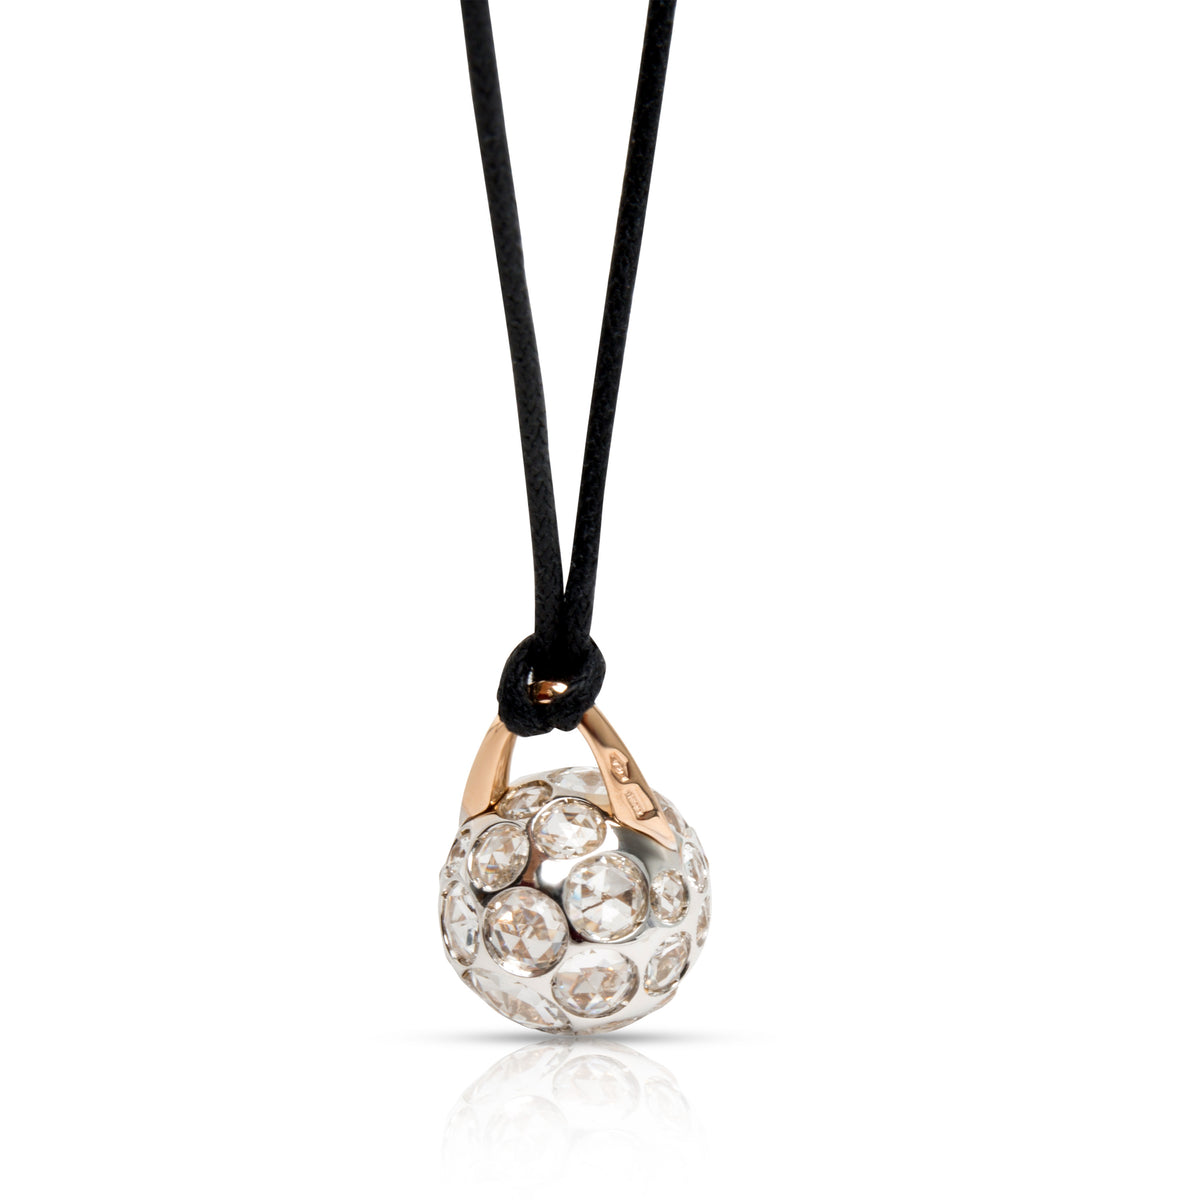 Pomellato Harem Ball Rock Crystal Pendant on a Black Cord in 18KT 2 Tone Gold